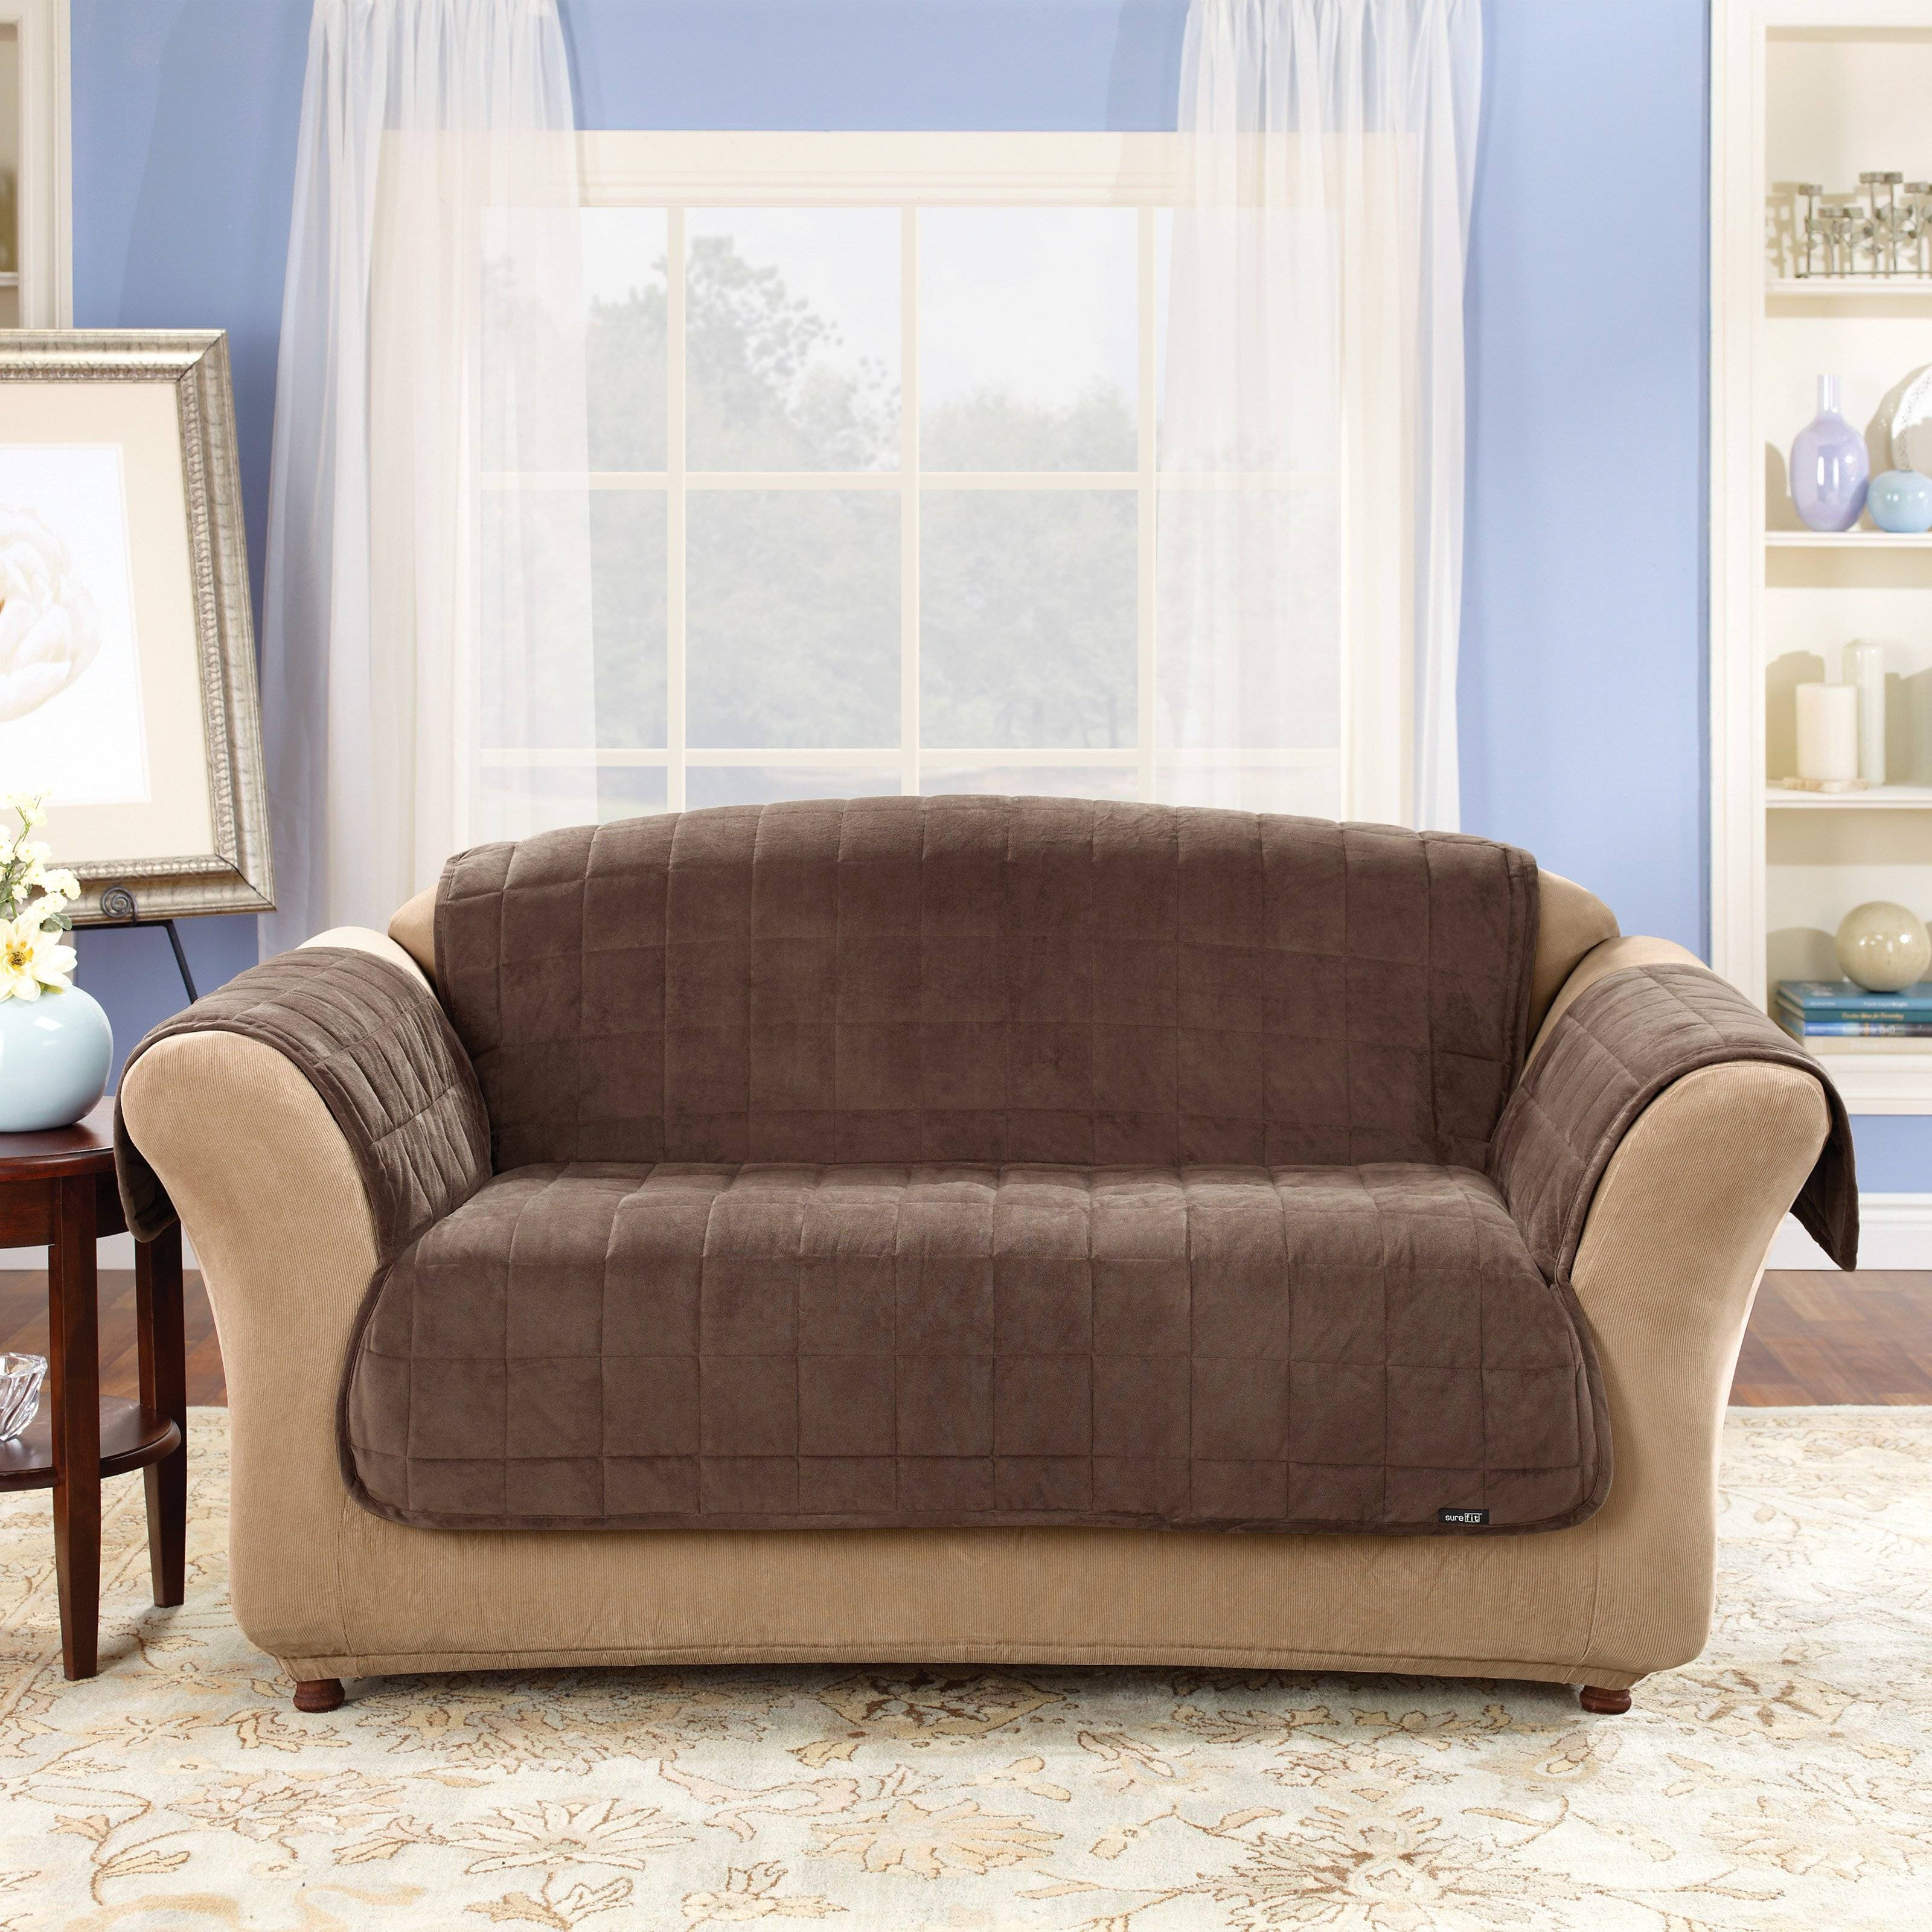 Furniture: Update Your Cozy Living Room With Cheap Sofa Covers within Sofa and Chair Slipcovers (Image 10 of 15)